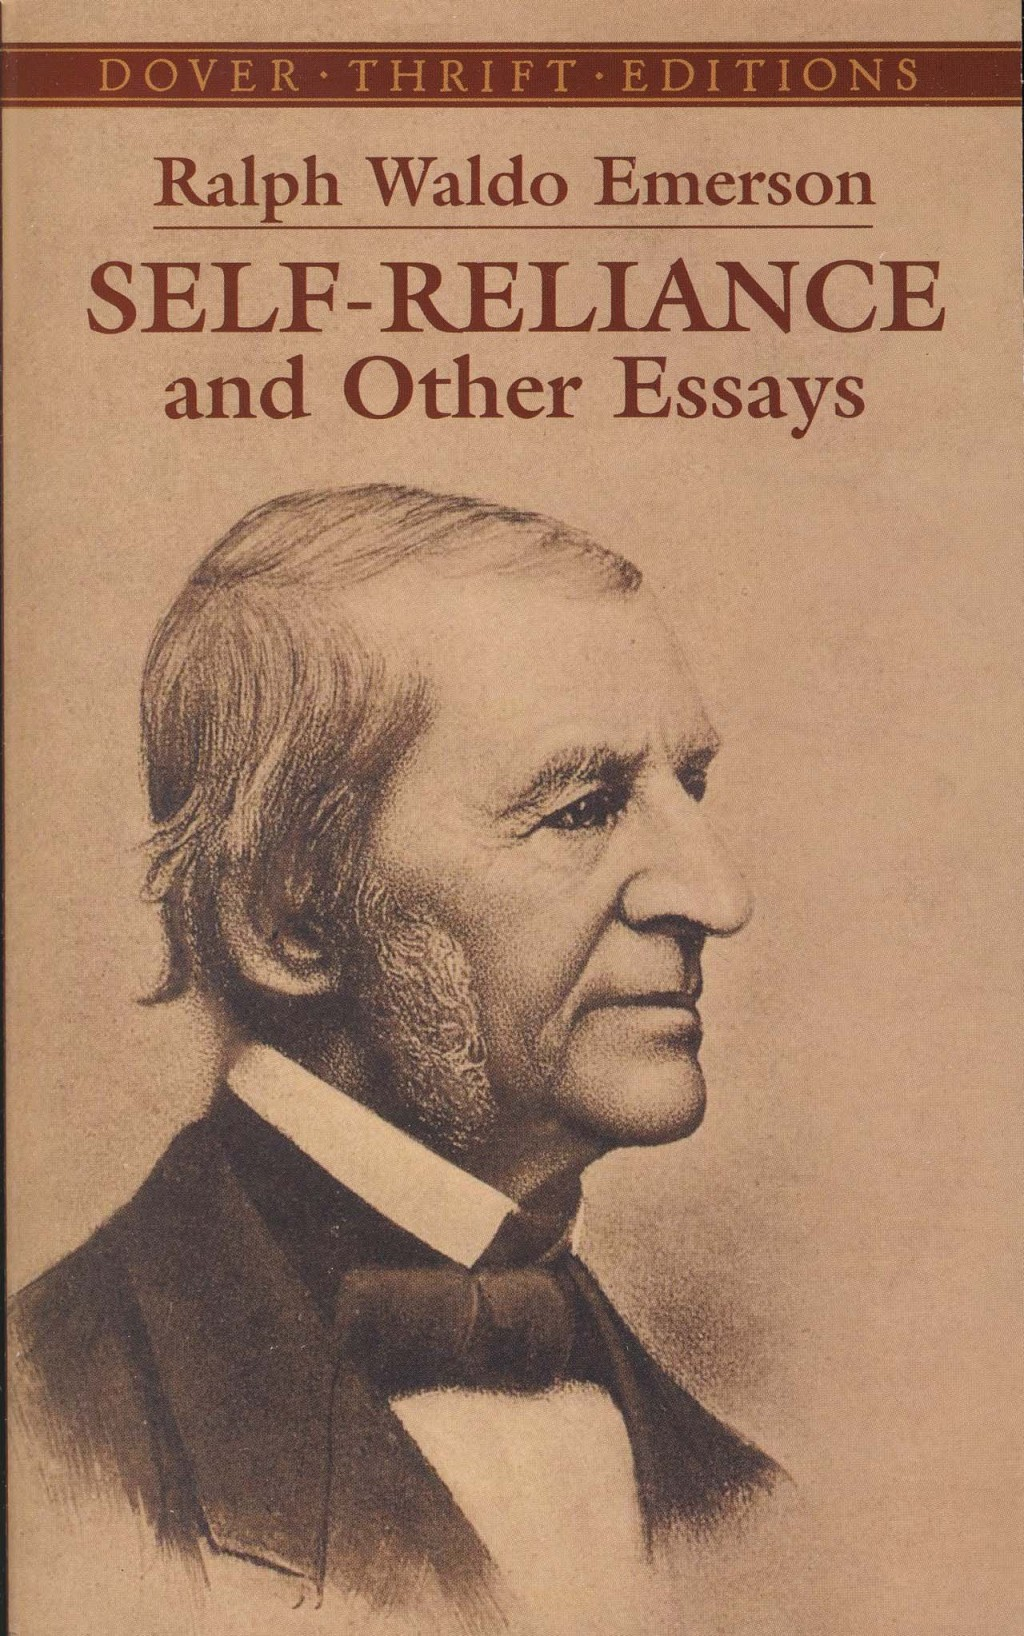 003 91btiwopxal Essay Example Emerson Dreaded Essays Self Reliance And Other Second Series Nature Large